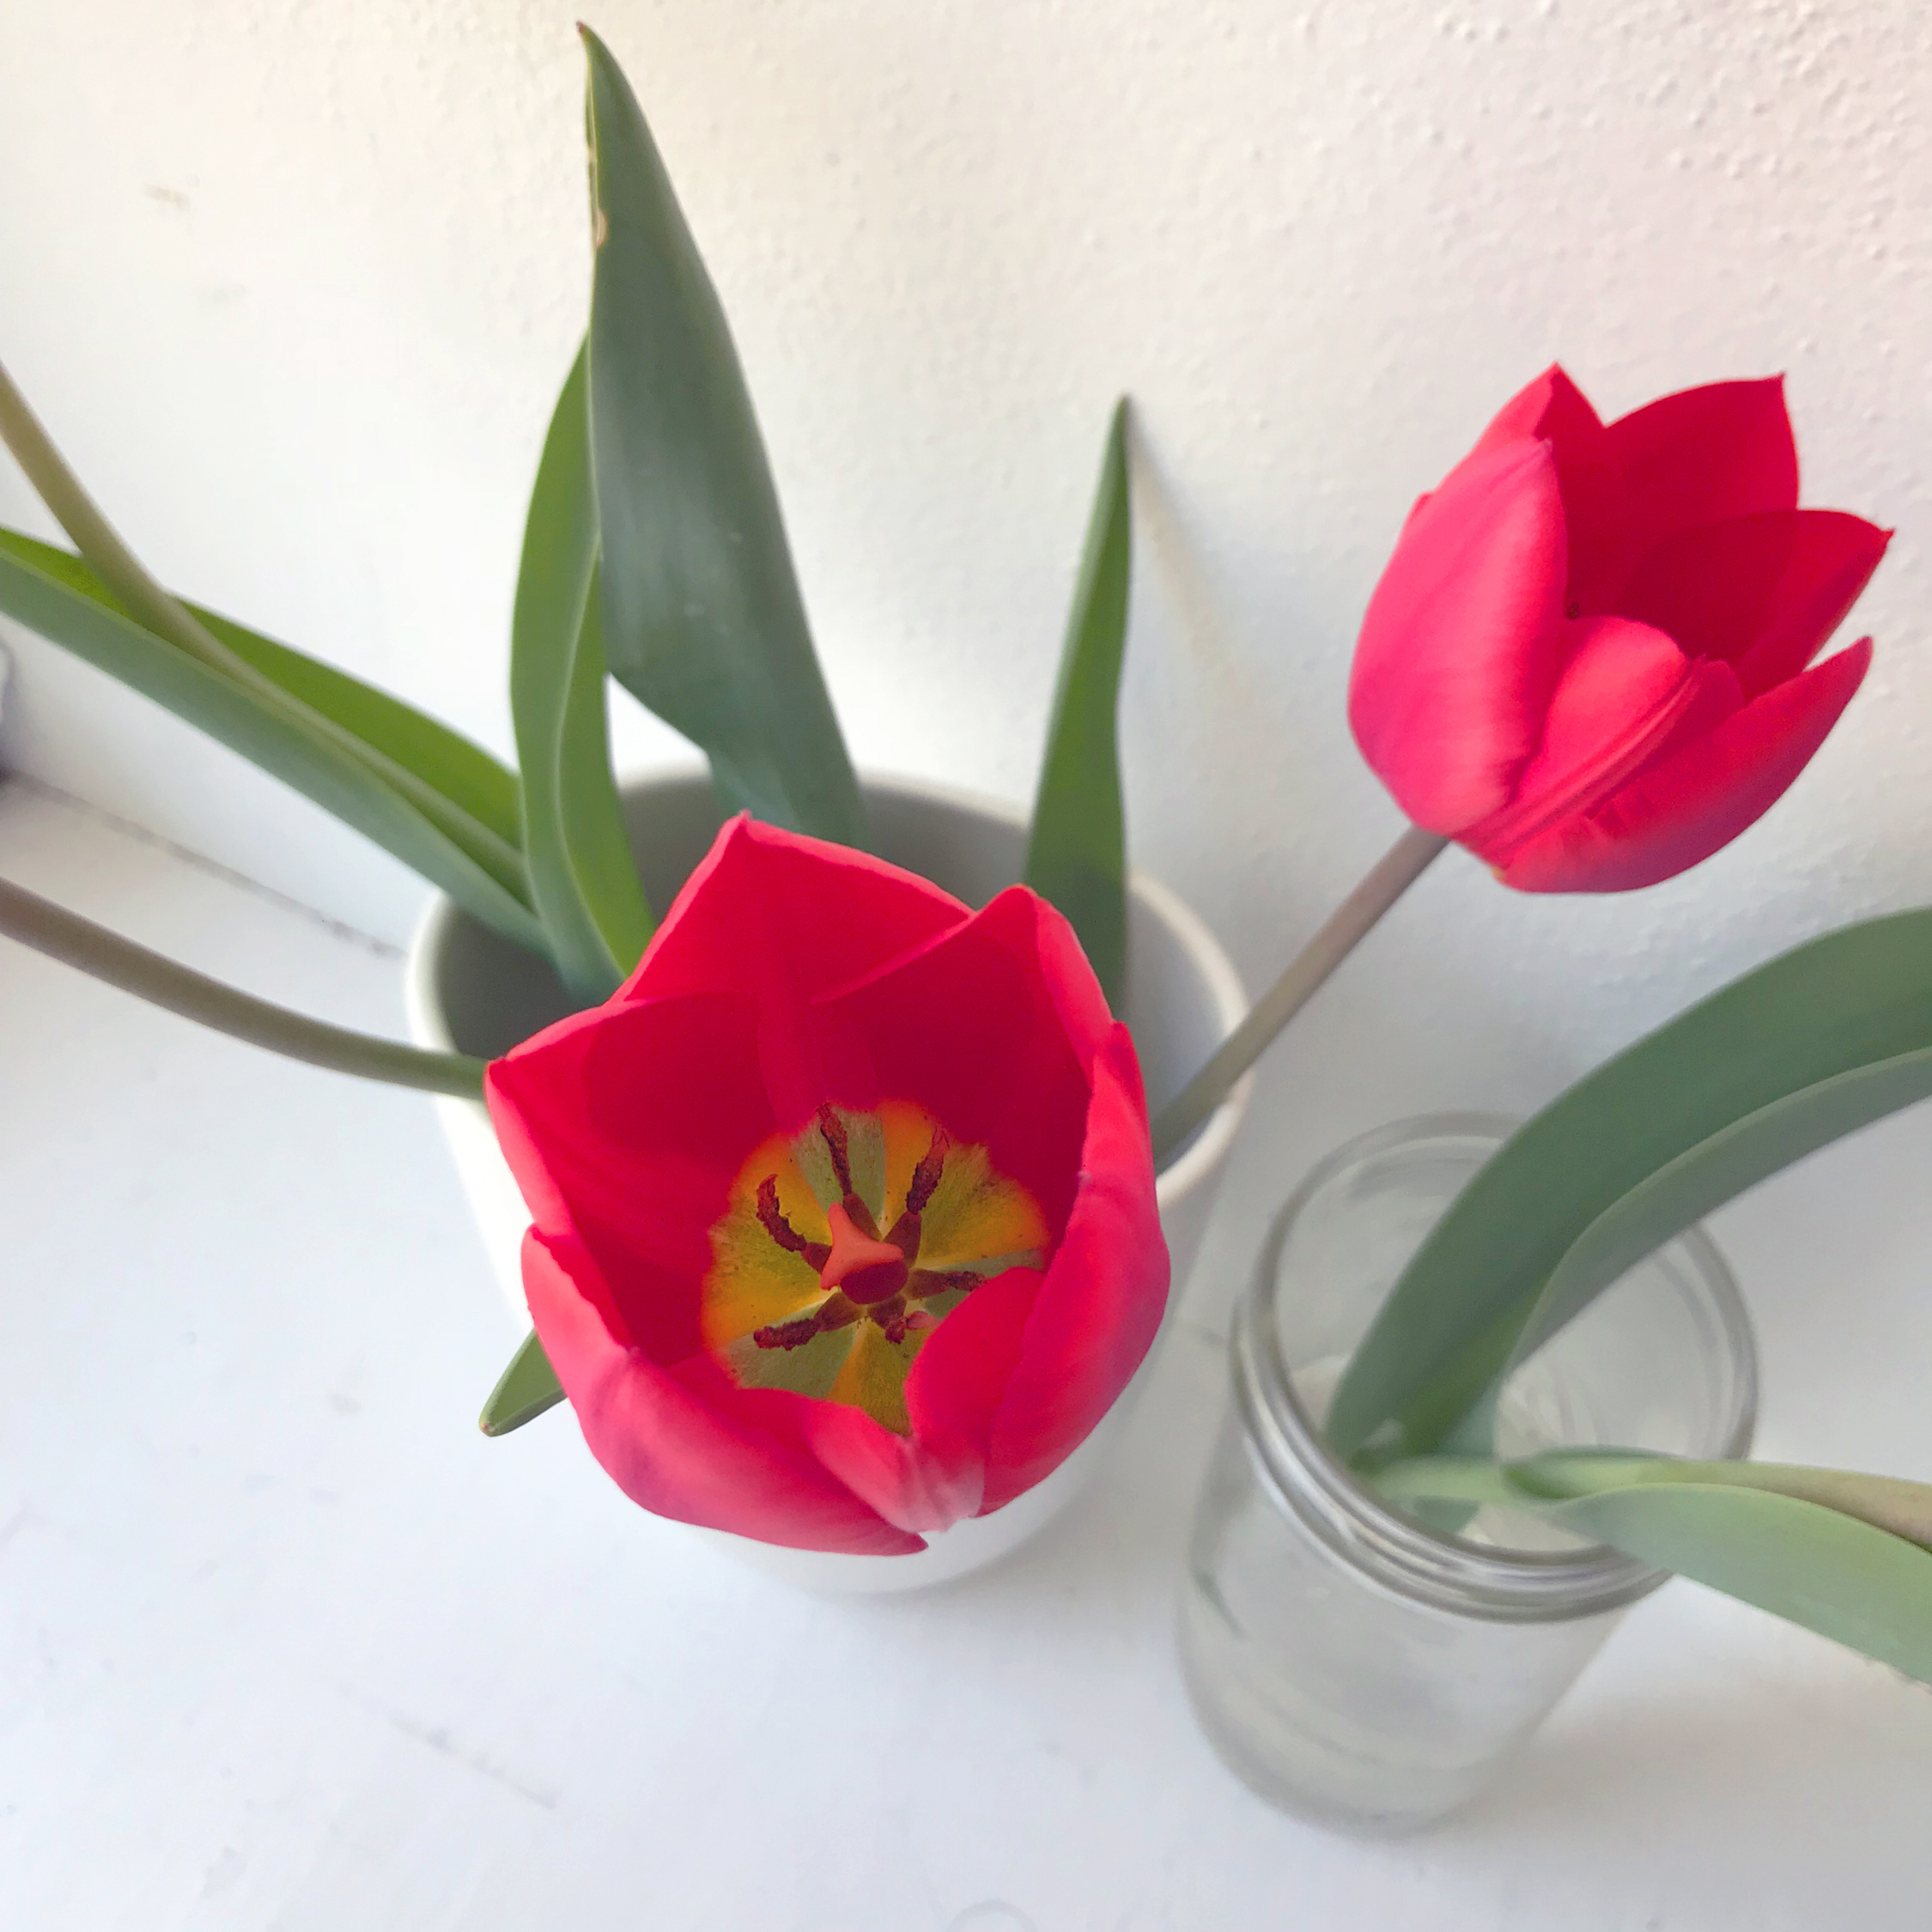 Red Tulips Brought into My Studio to Paint